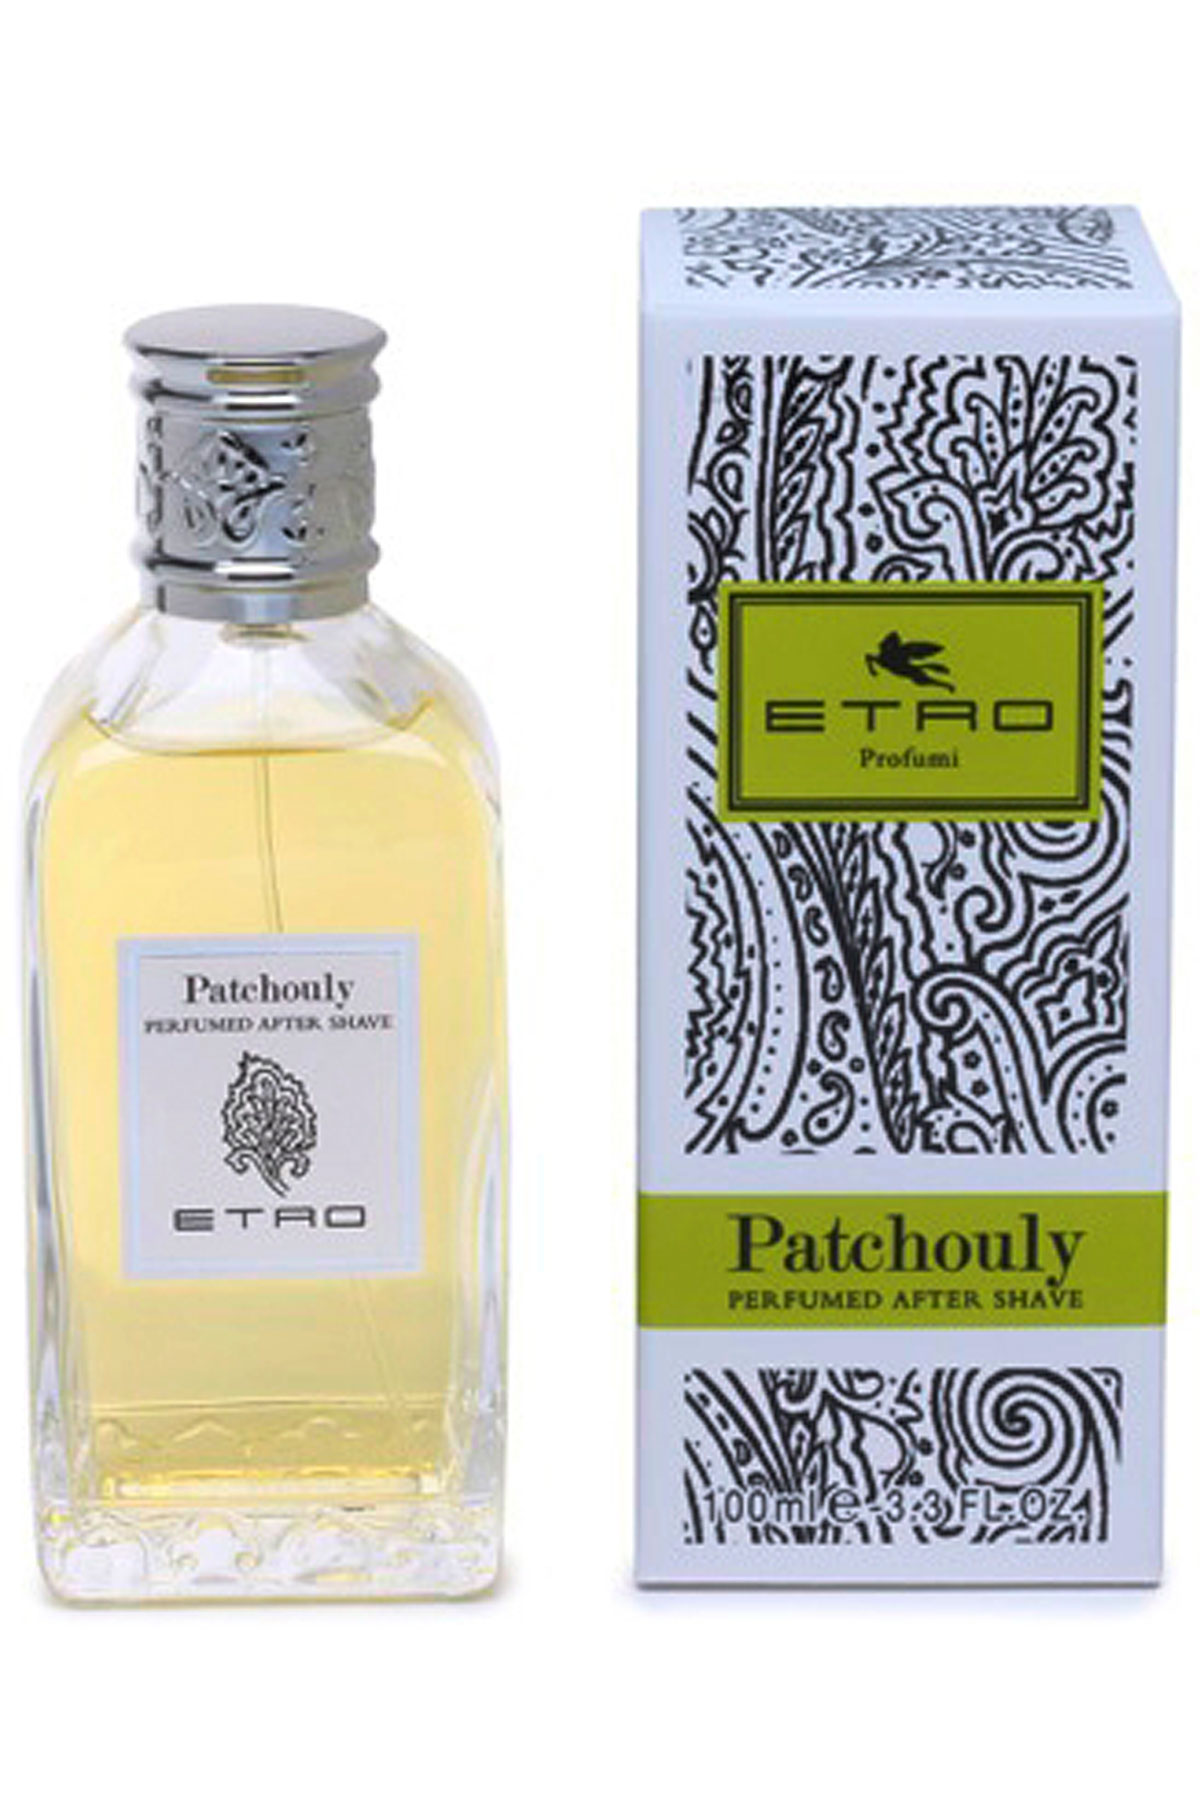 Etro Shave for Men On Sale, Patchouly - After Shave - 100 Ml, 2019, 100 ml